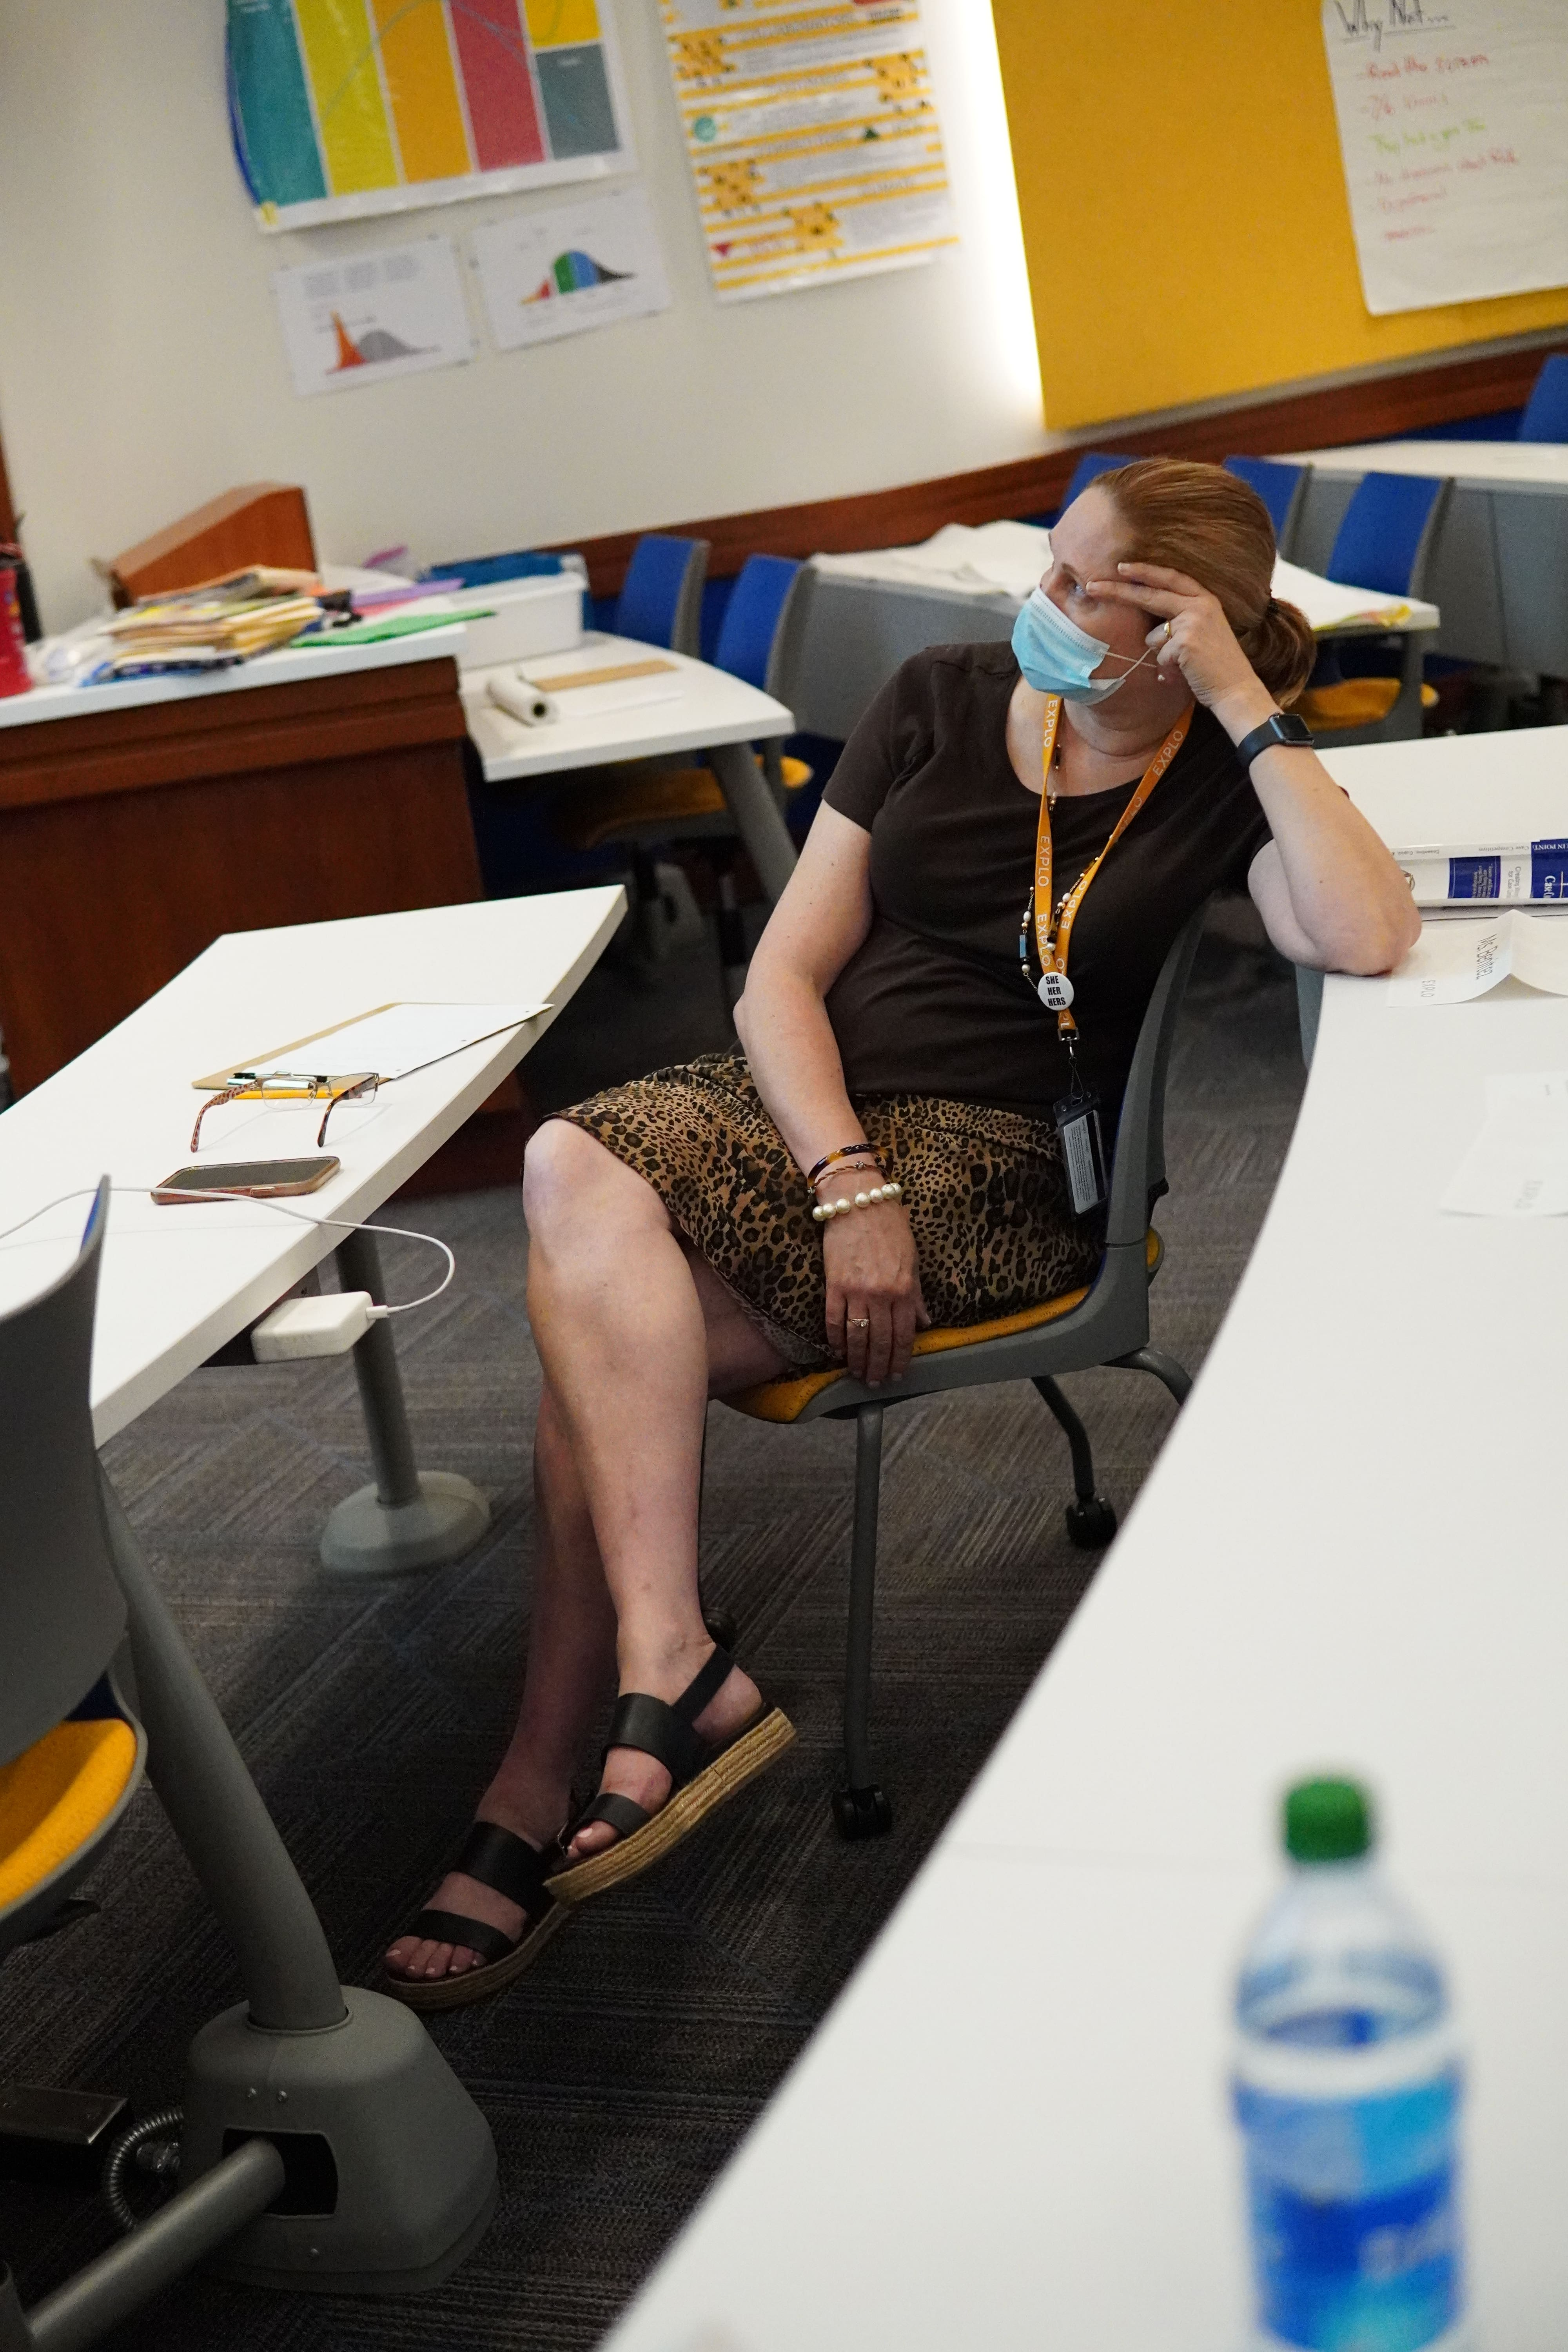 Instructor Barbara Bernier leans back in her chair as she listens to the first practice presentation of the day.